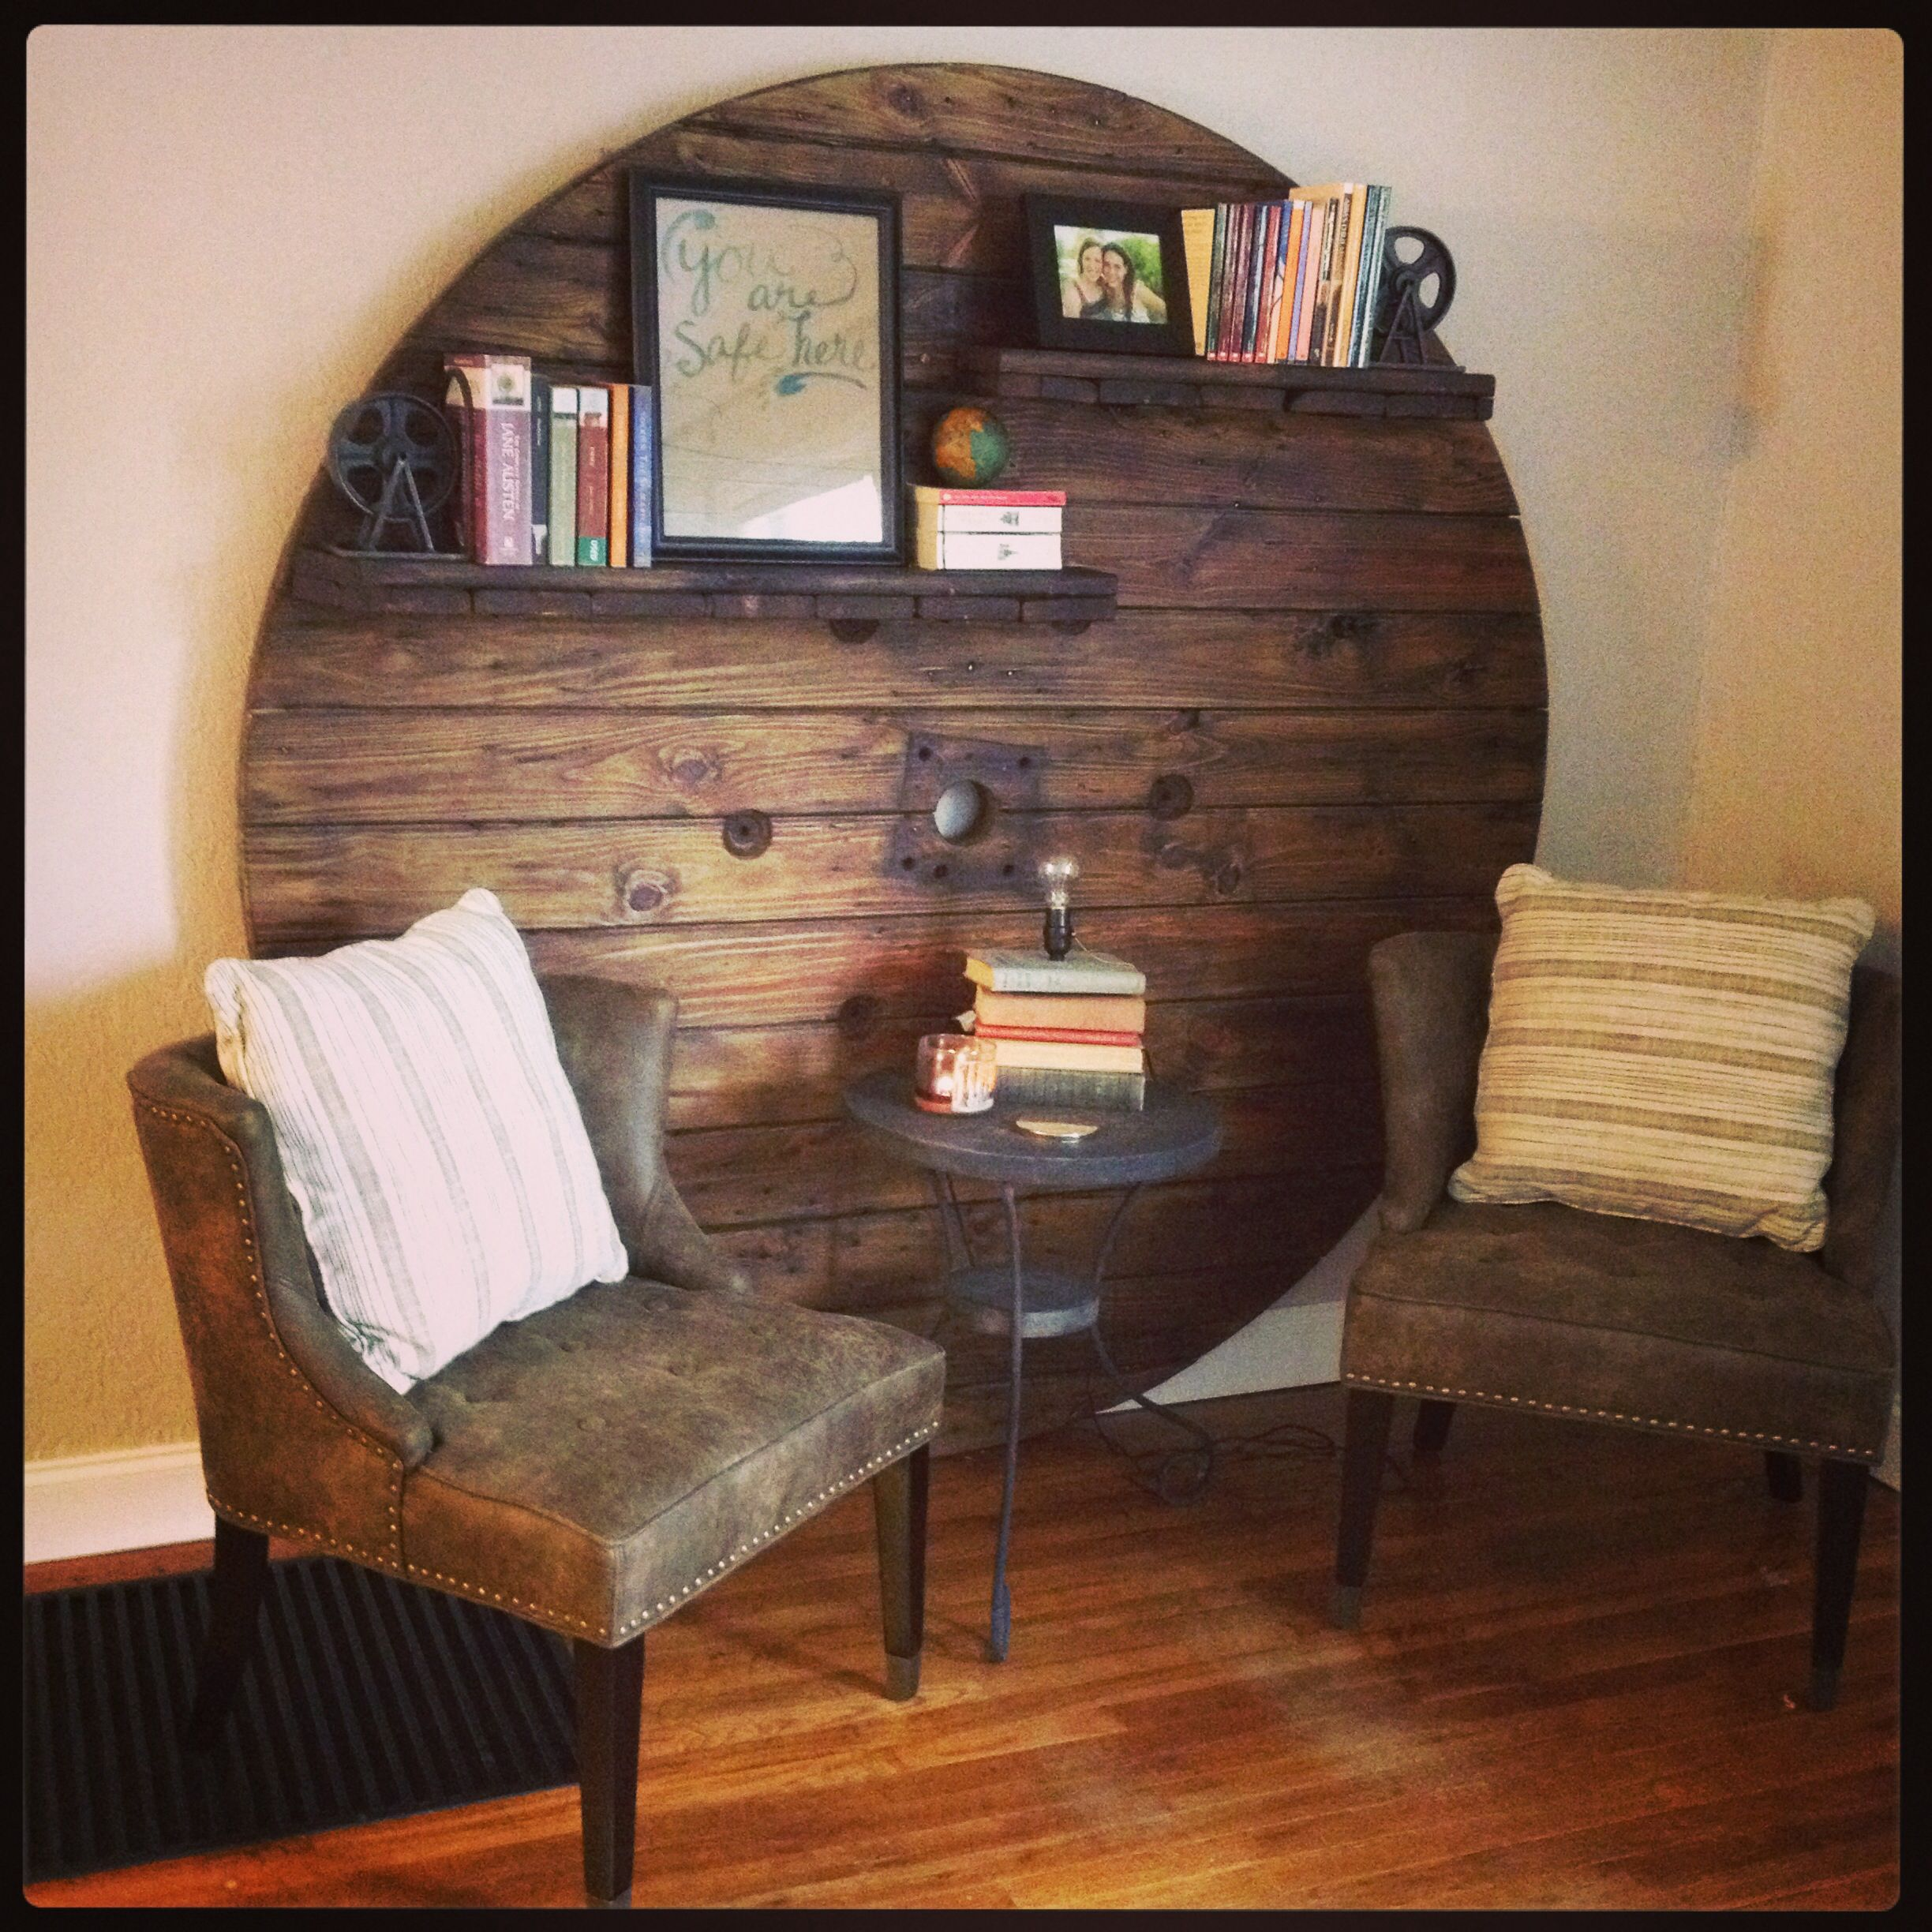 Wooden cable spool turned into wall art/bookshelf | DIY ...